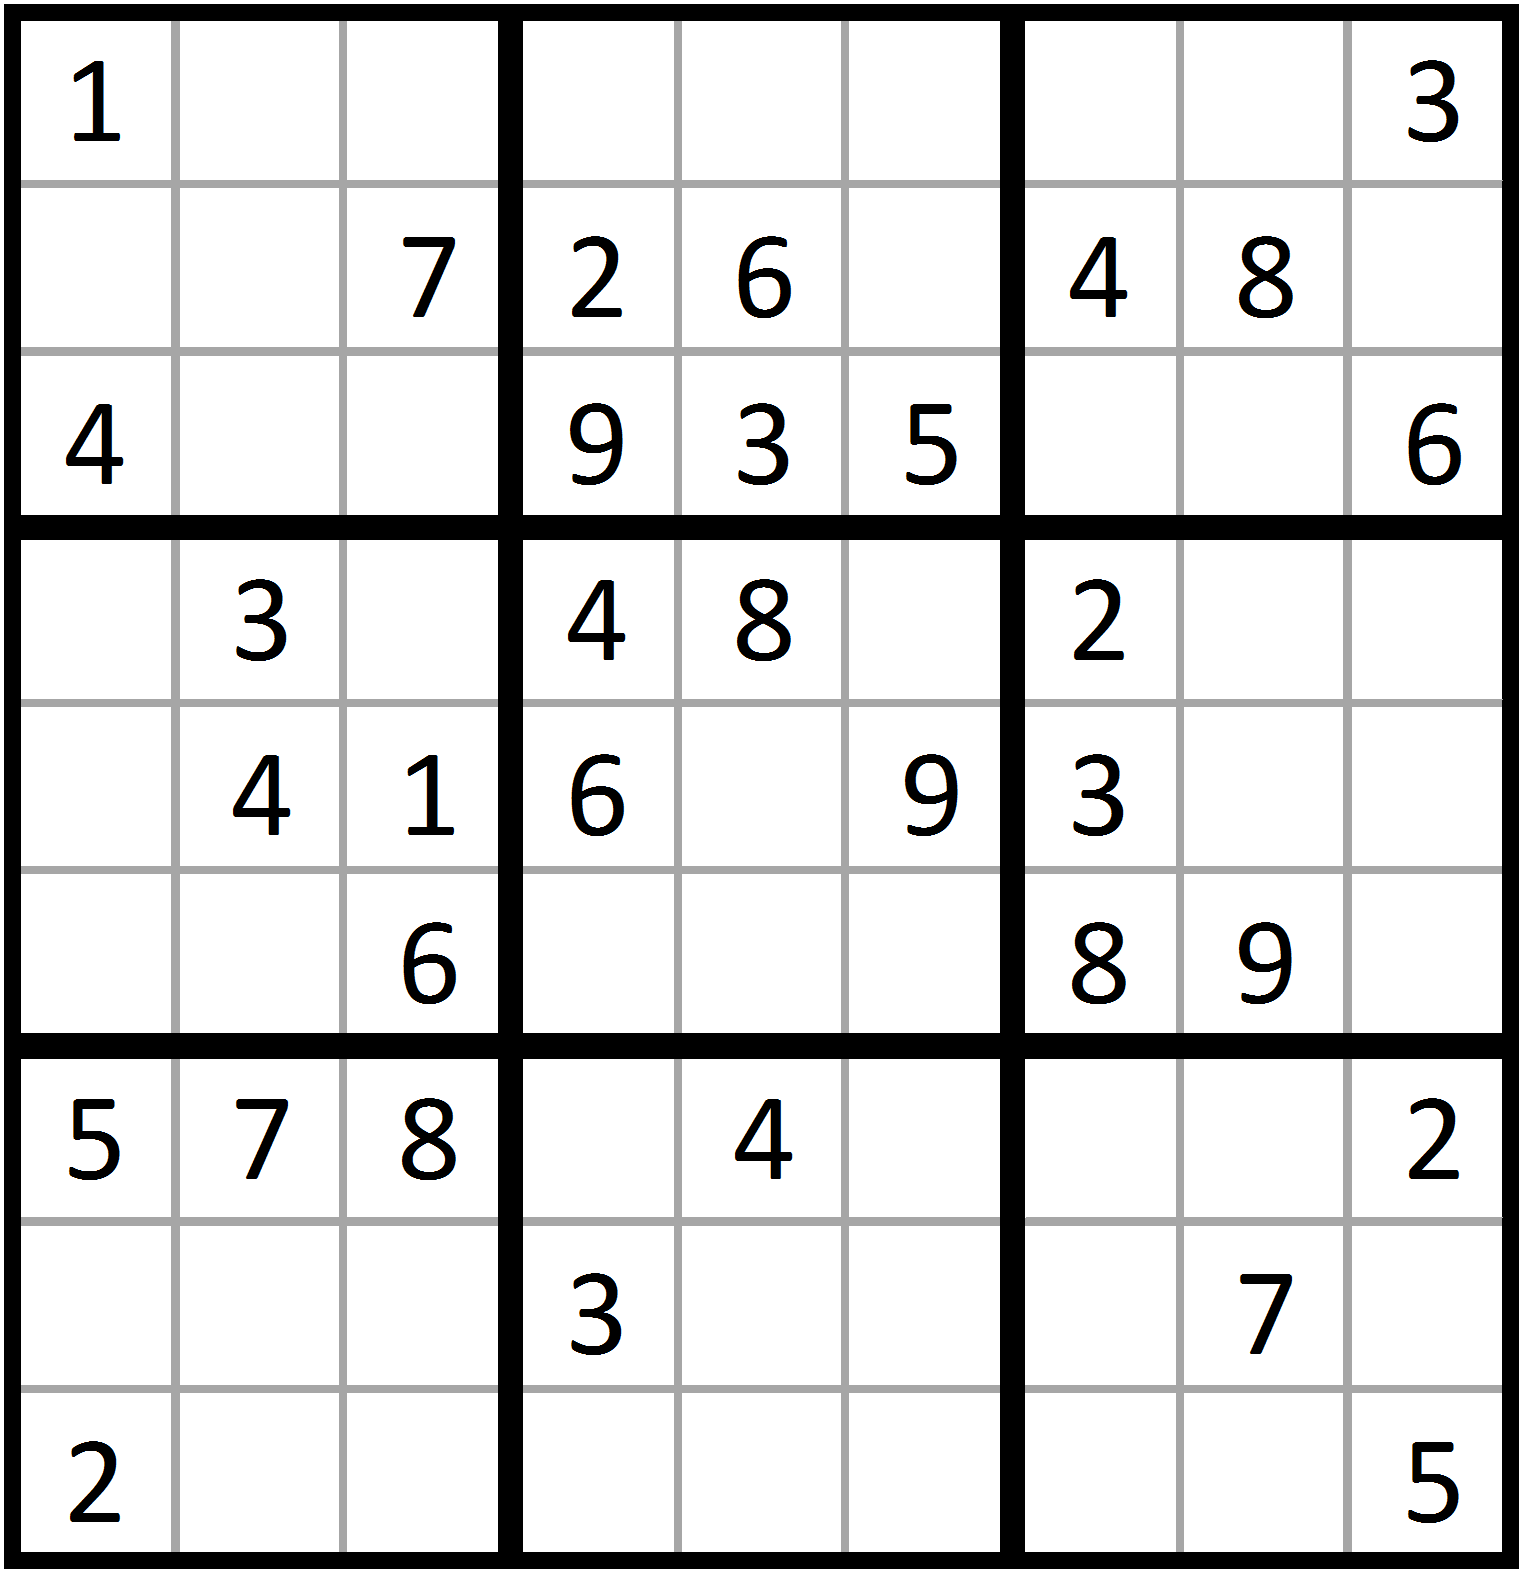 solving sudoku with sas iml the sas training post